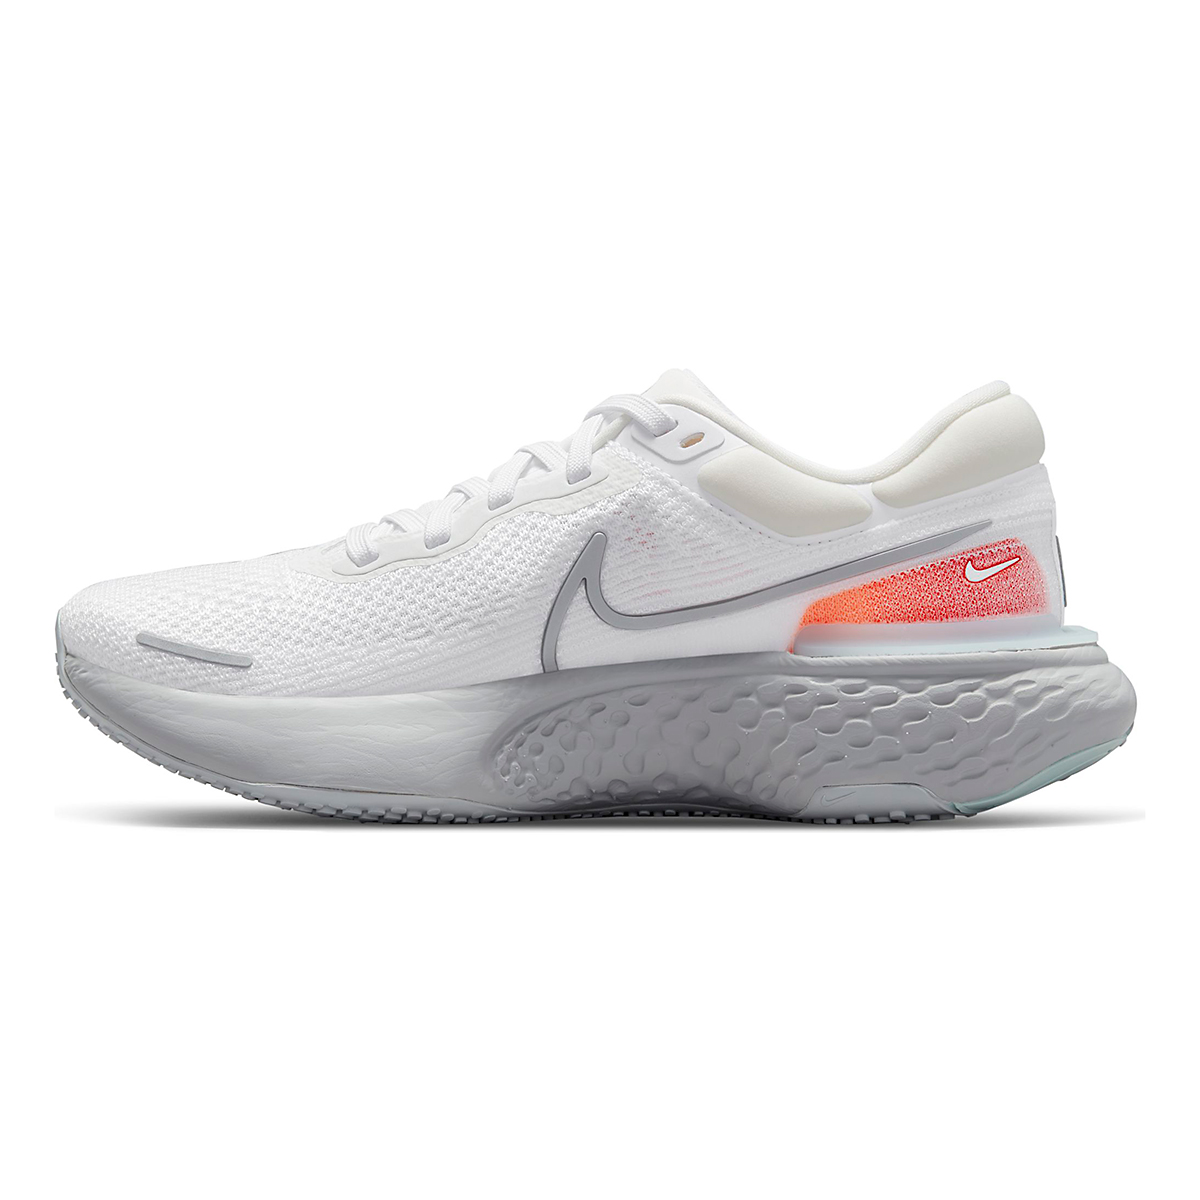 Men's Nike ZoomX Invincible Run Flyknit Running Shoe - Color: White/Metallic Silver/Pure Platinum - Size: 6 - Width: Regular, White/Metallic Silver/Pure Platinum, large, image 2